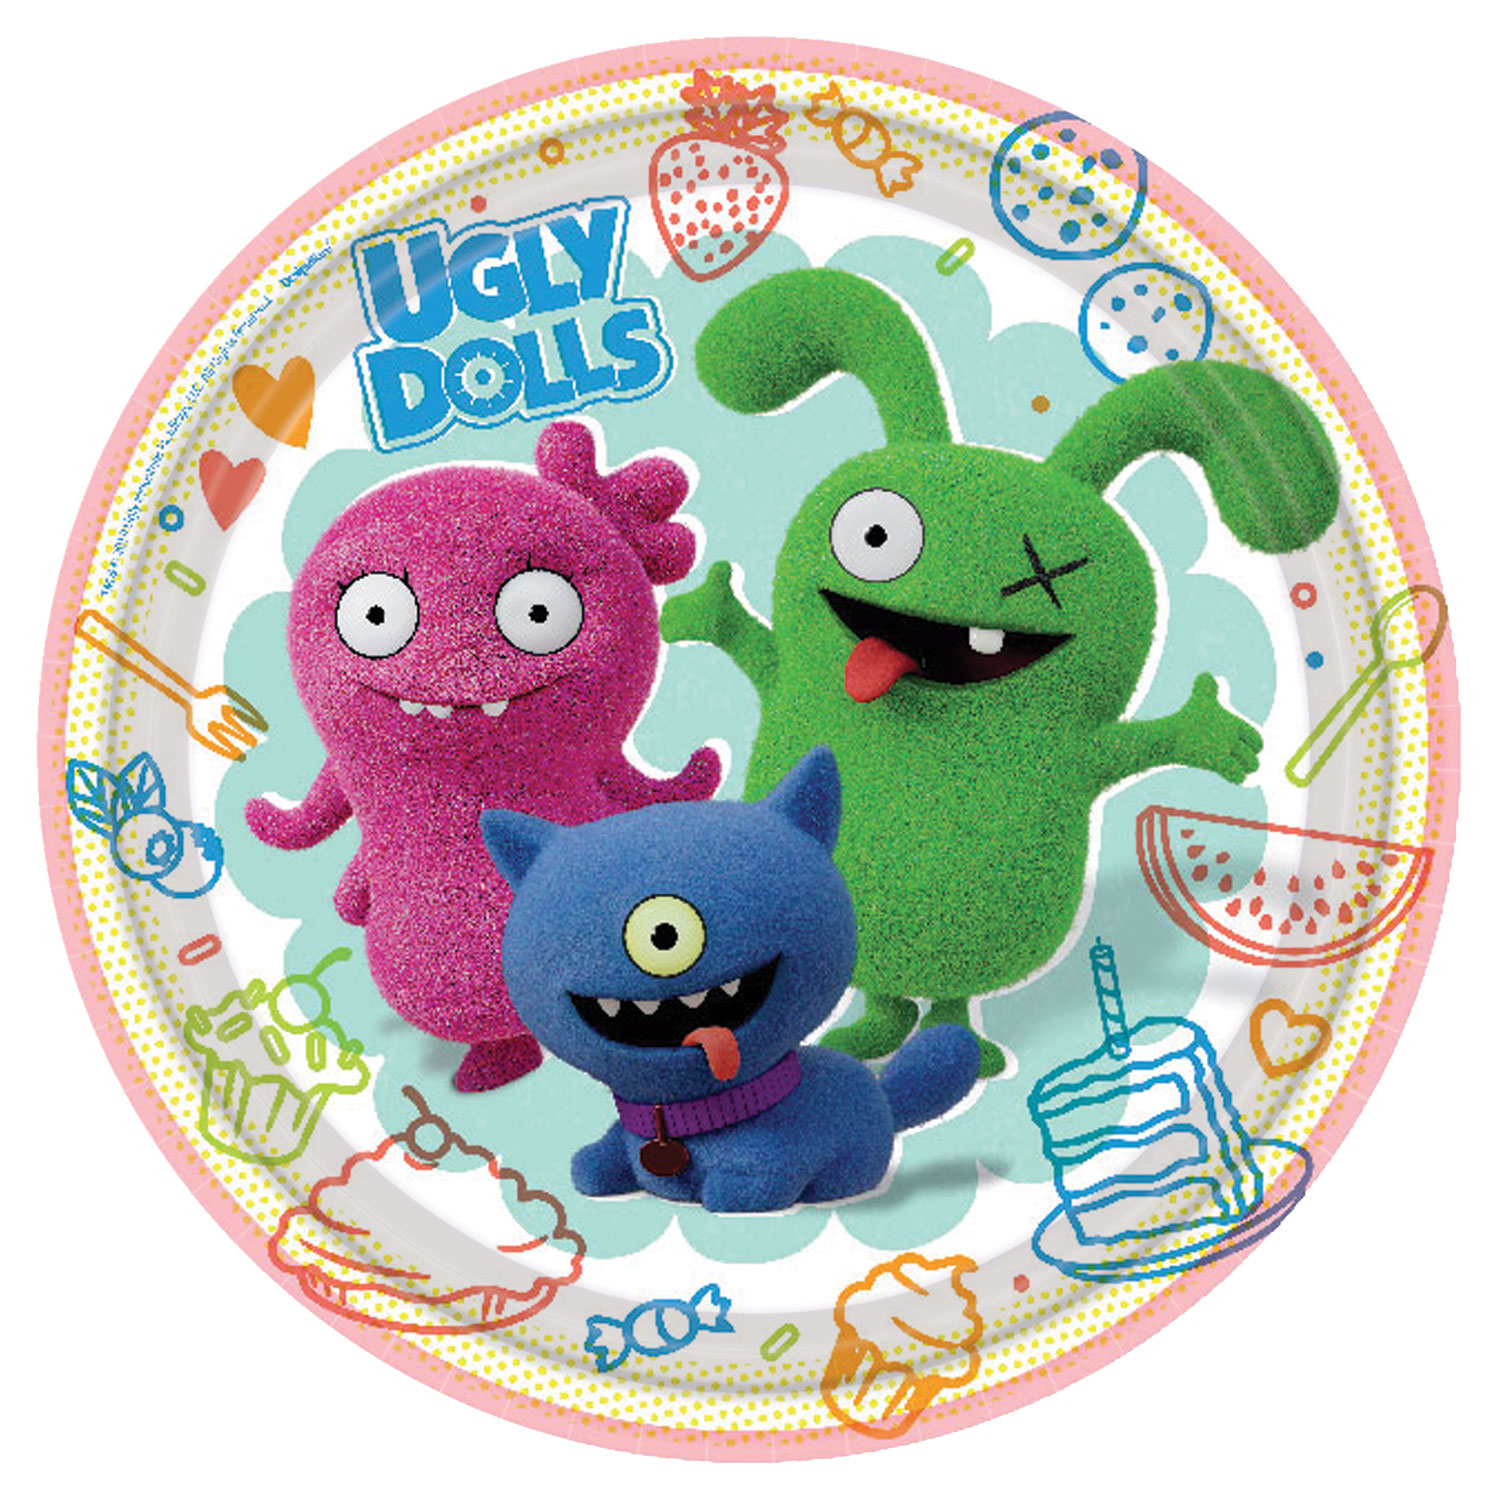 New Ugly Dolls Party Plates